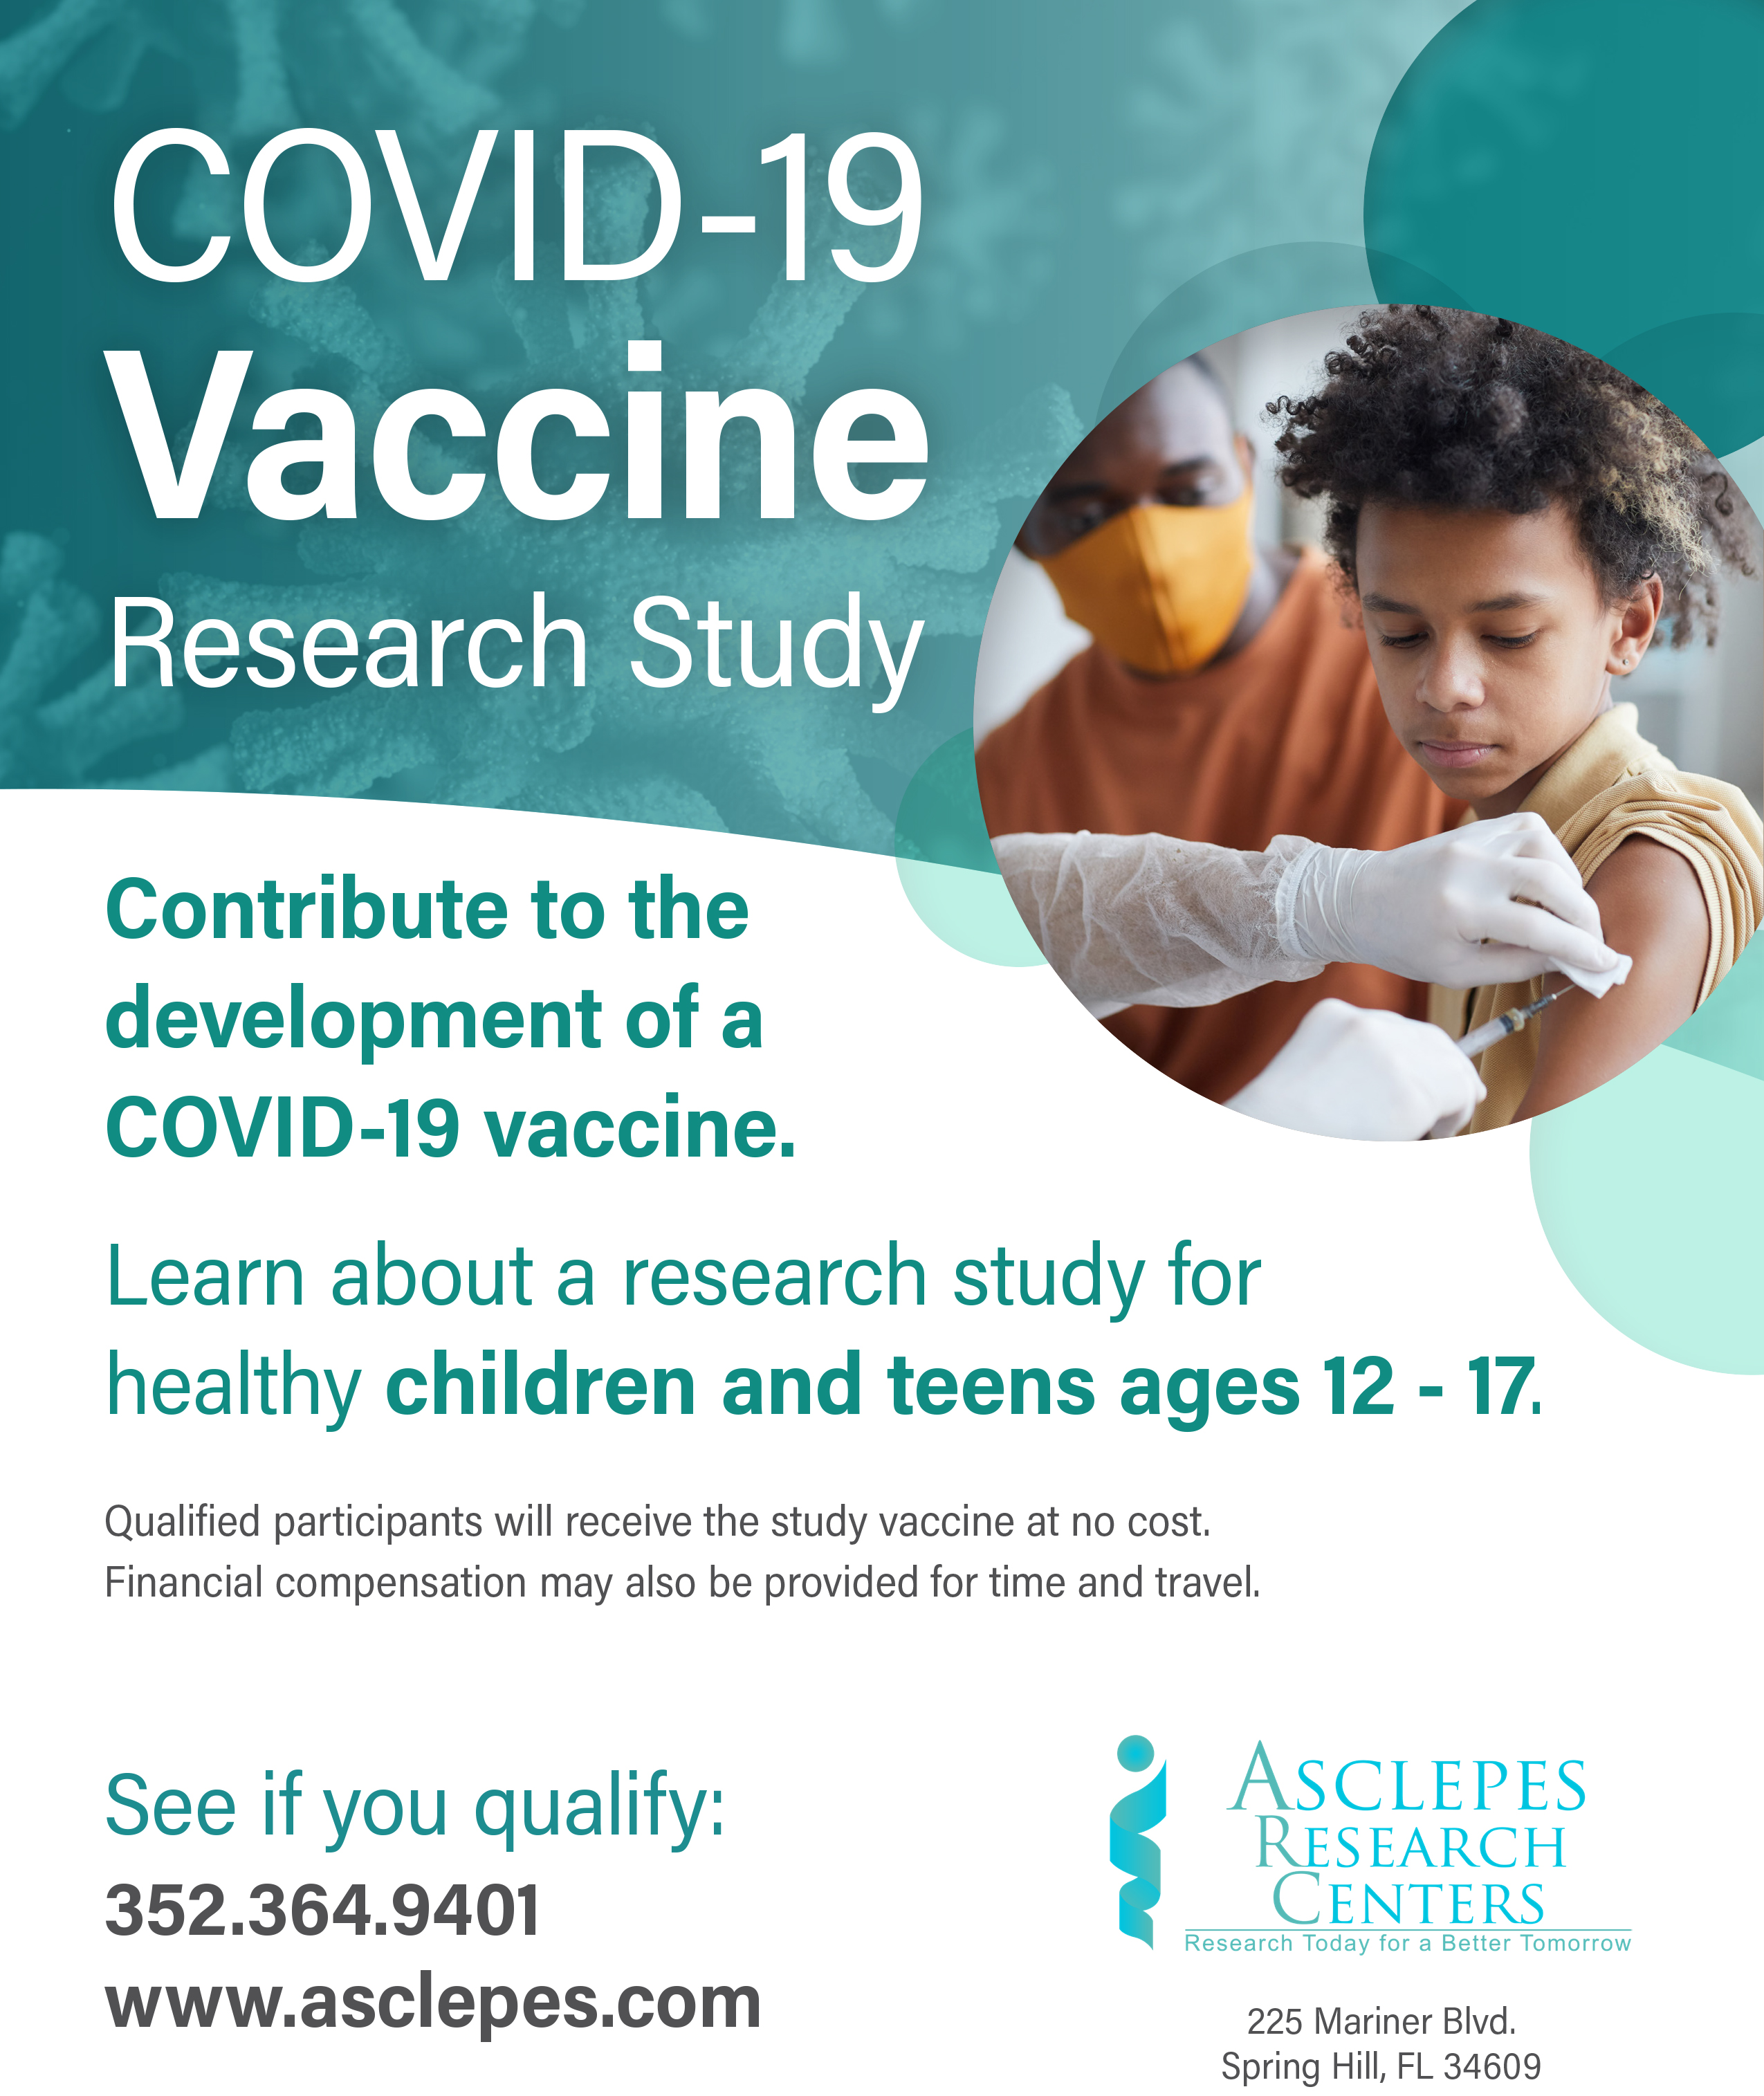 COVID-19 Vaccine Generic Ad - Asclepes - peds 12-17[1]